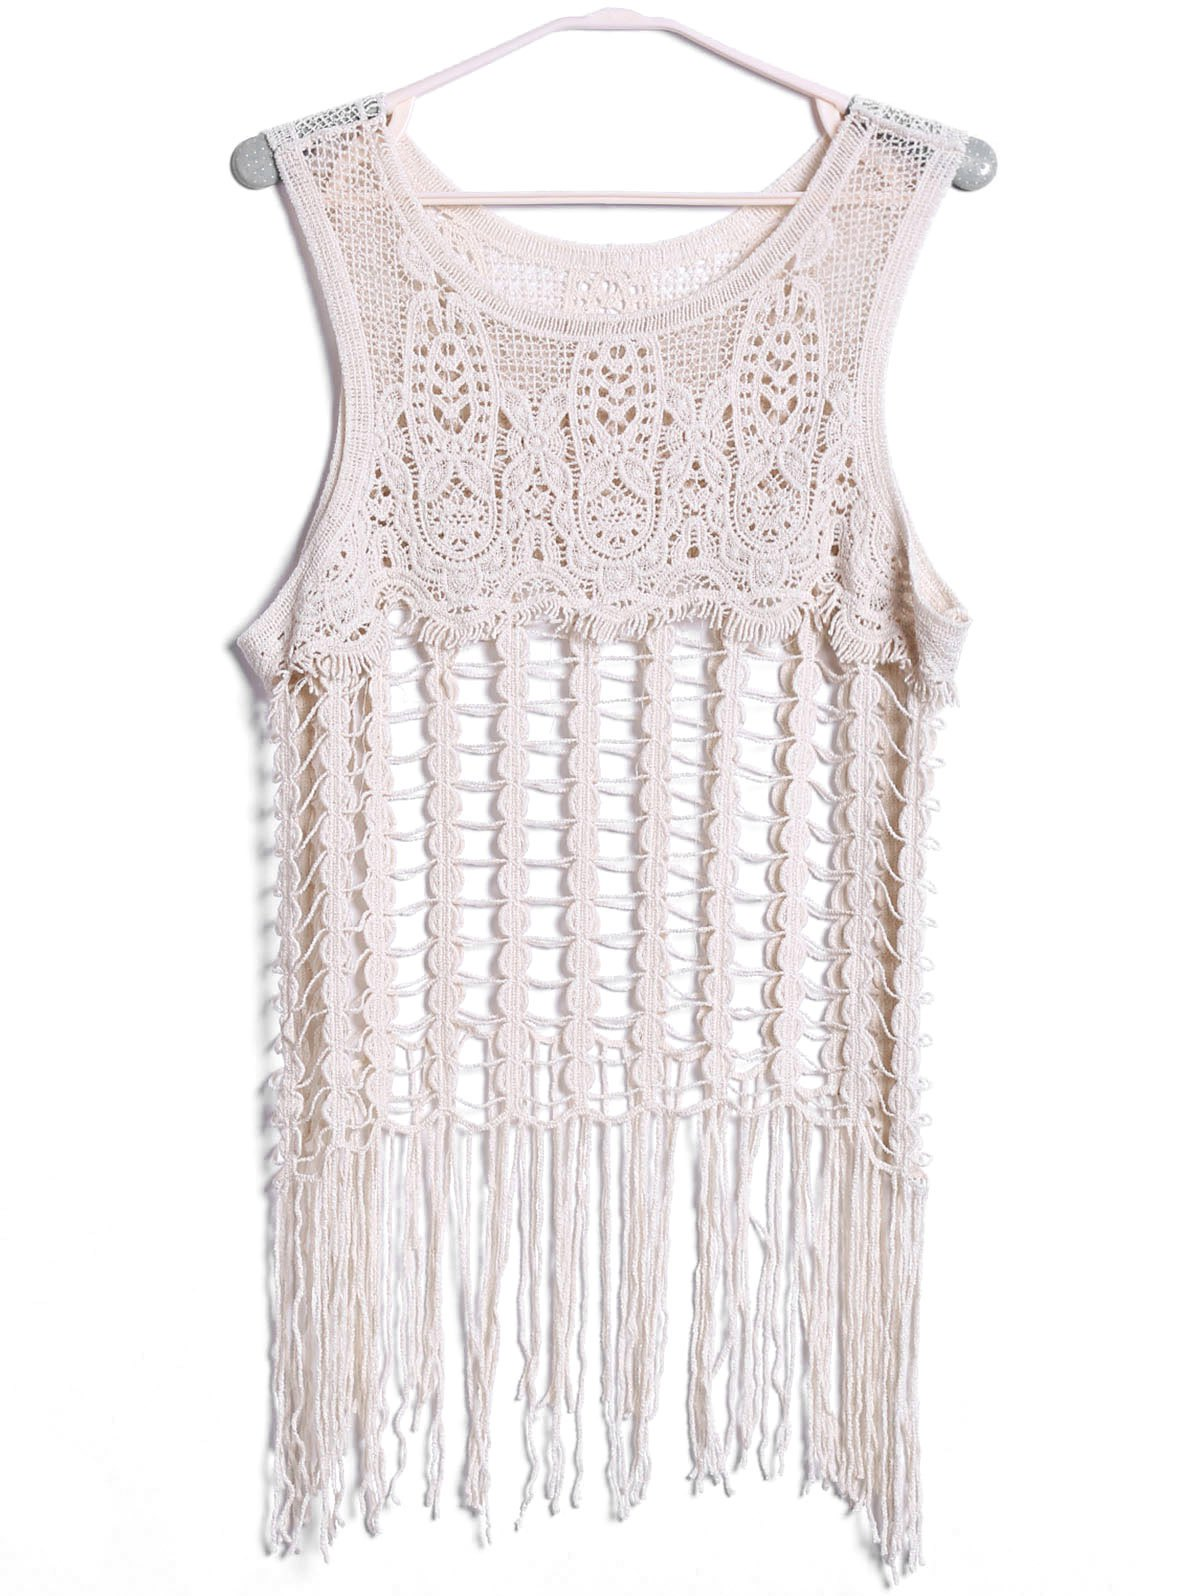 Sexy Scoop Neck Sleeveless Cut Out Tassels Solid Color Women's Tank Top - OFF WHITE ONE SIZE(FIT SIZE XS TO M)